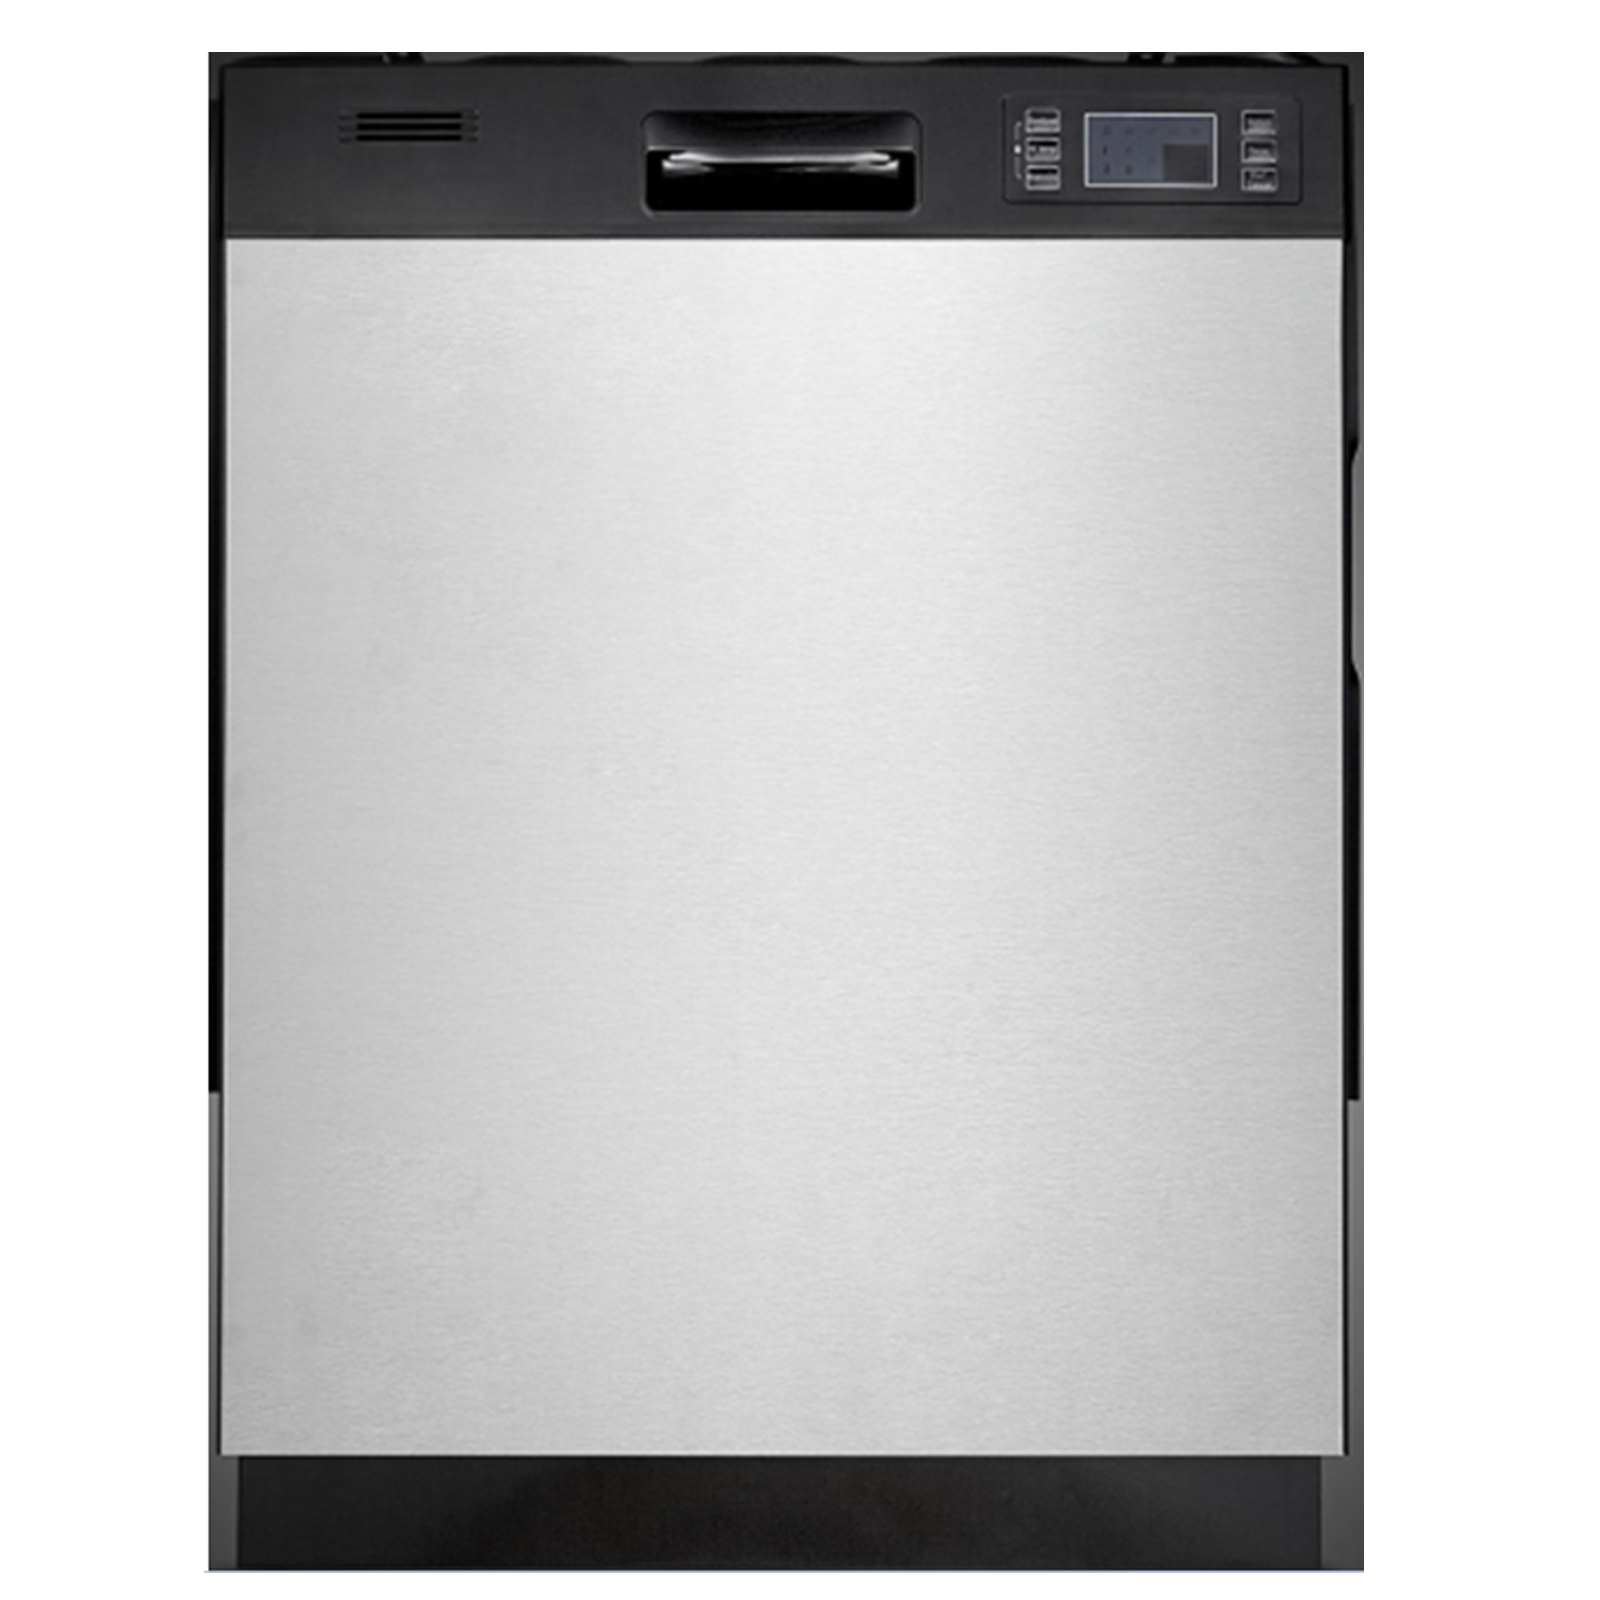 SB 80-9373 - Dishwasher - Built-in/ADA 10 Place Setting in Stainless